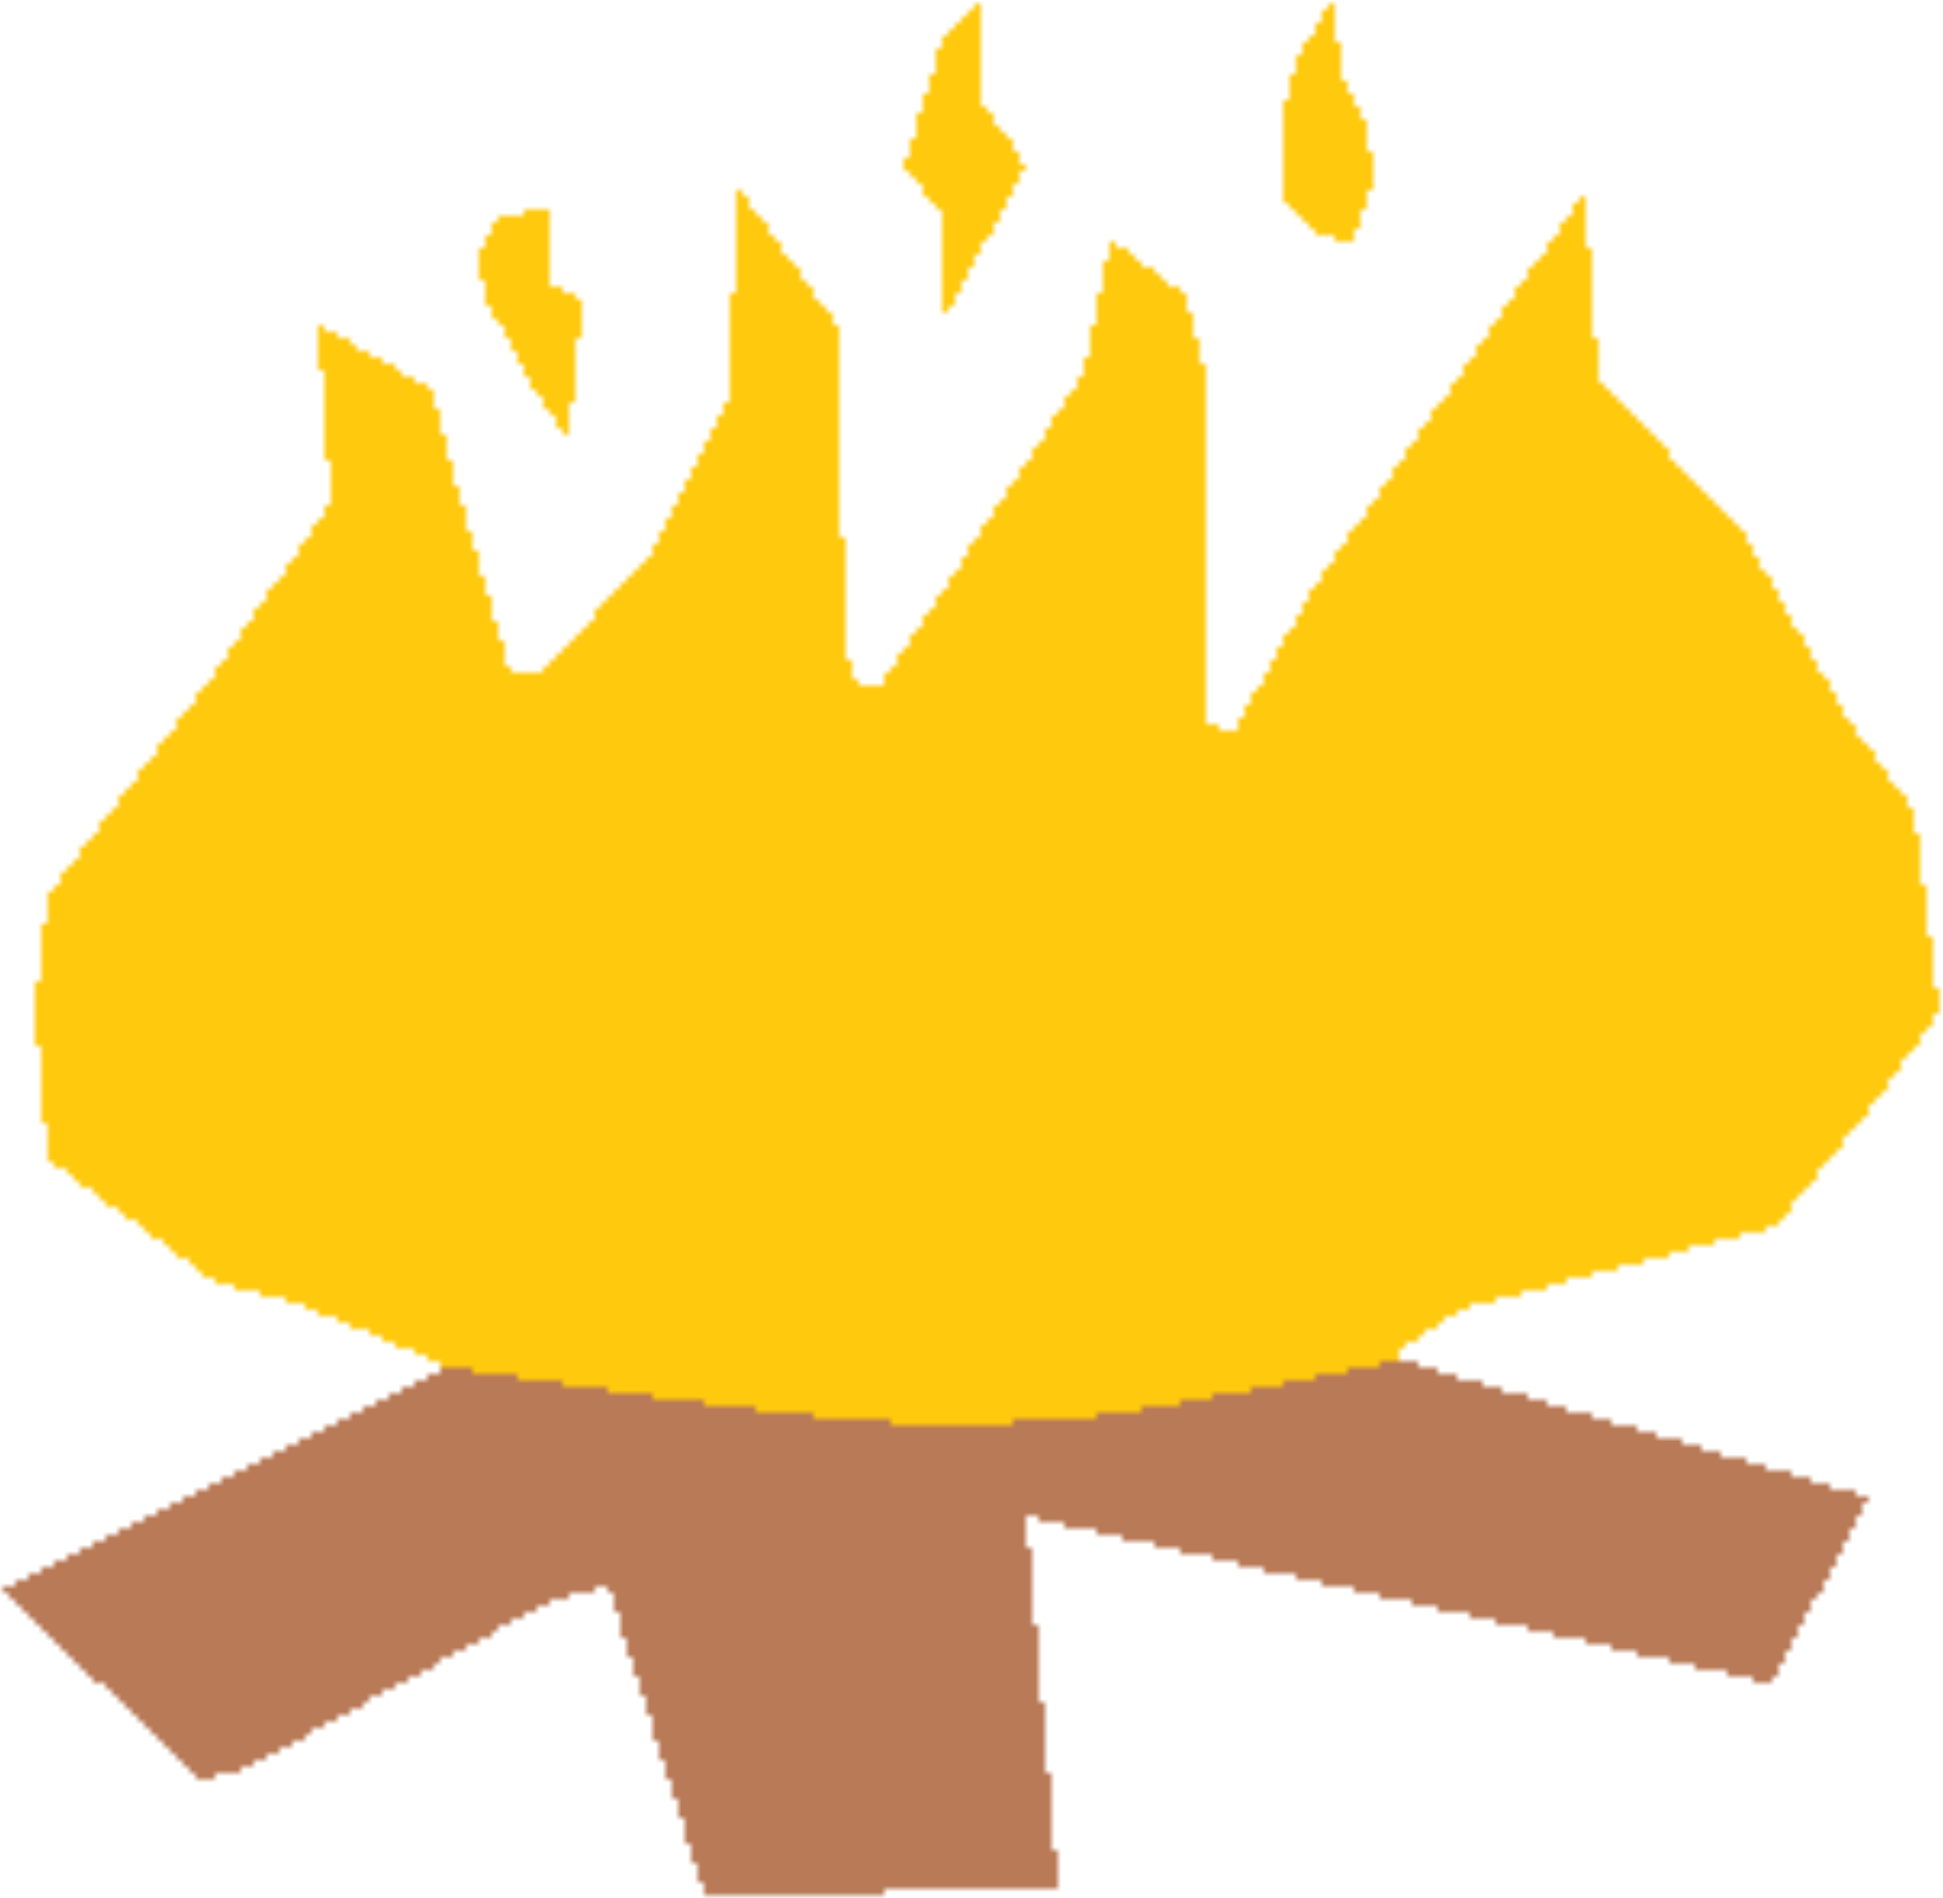 Camp Fire Vector Clipart image.